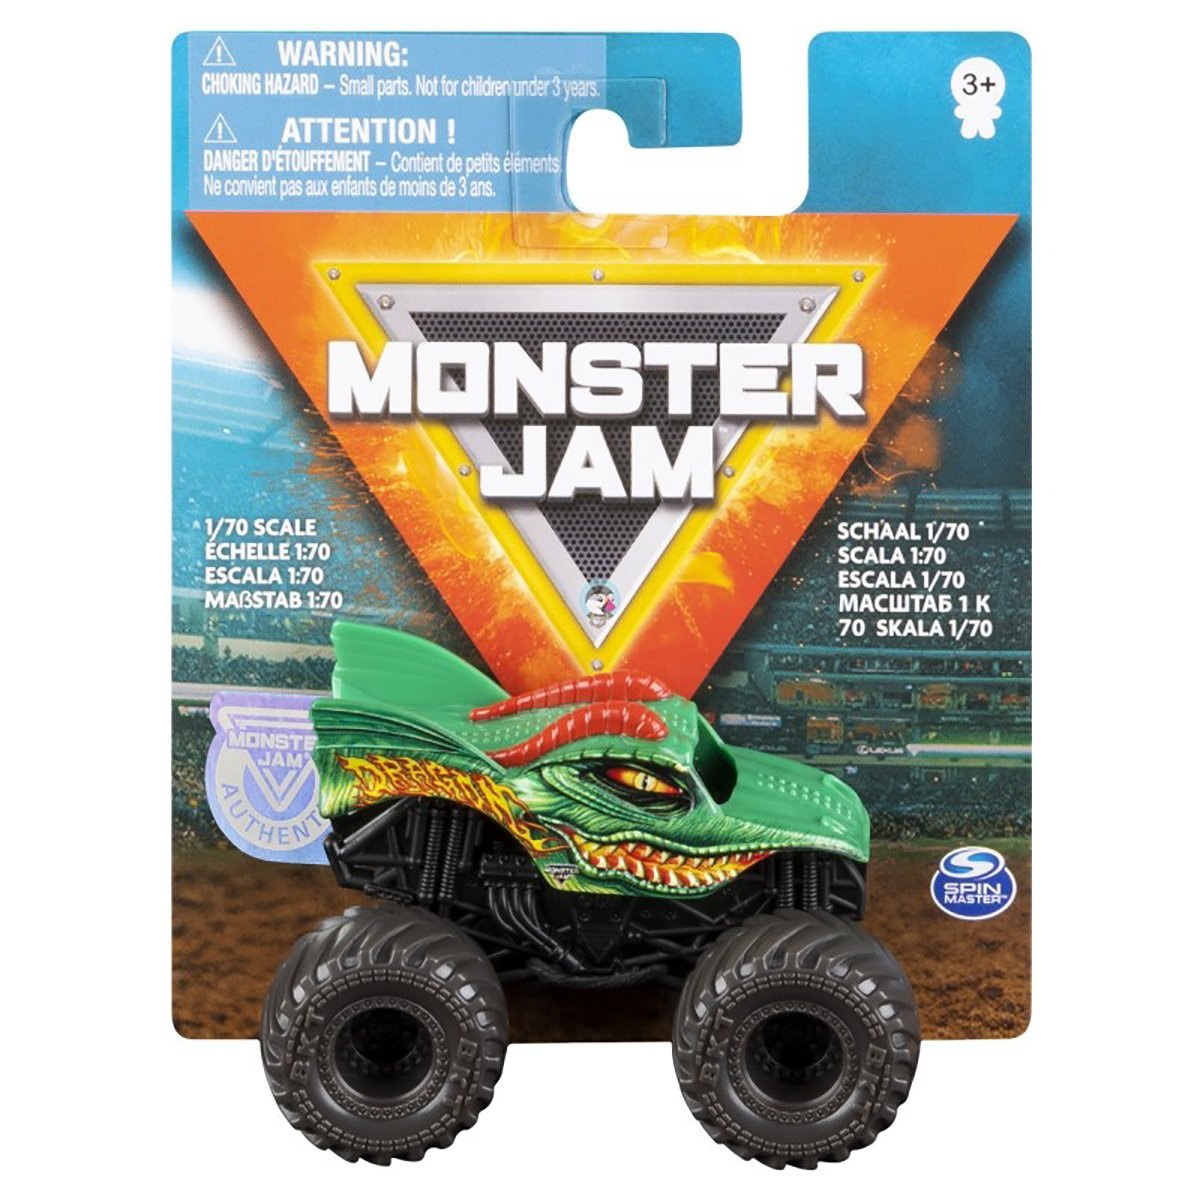 Masinuta Monster Jam 1:70, Dragon, 20120610